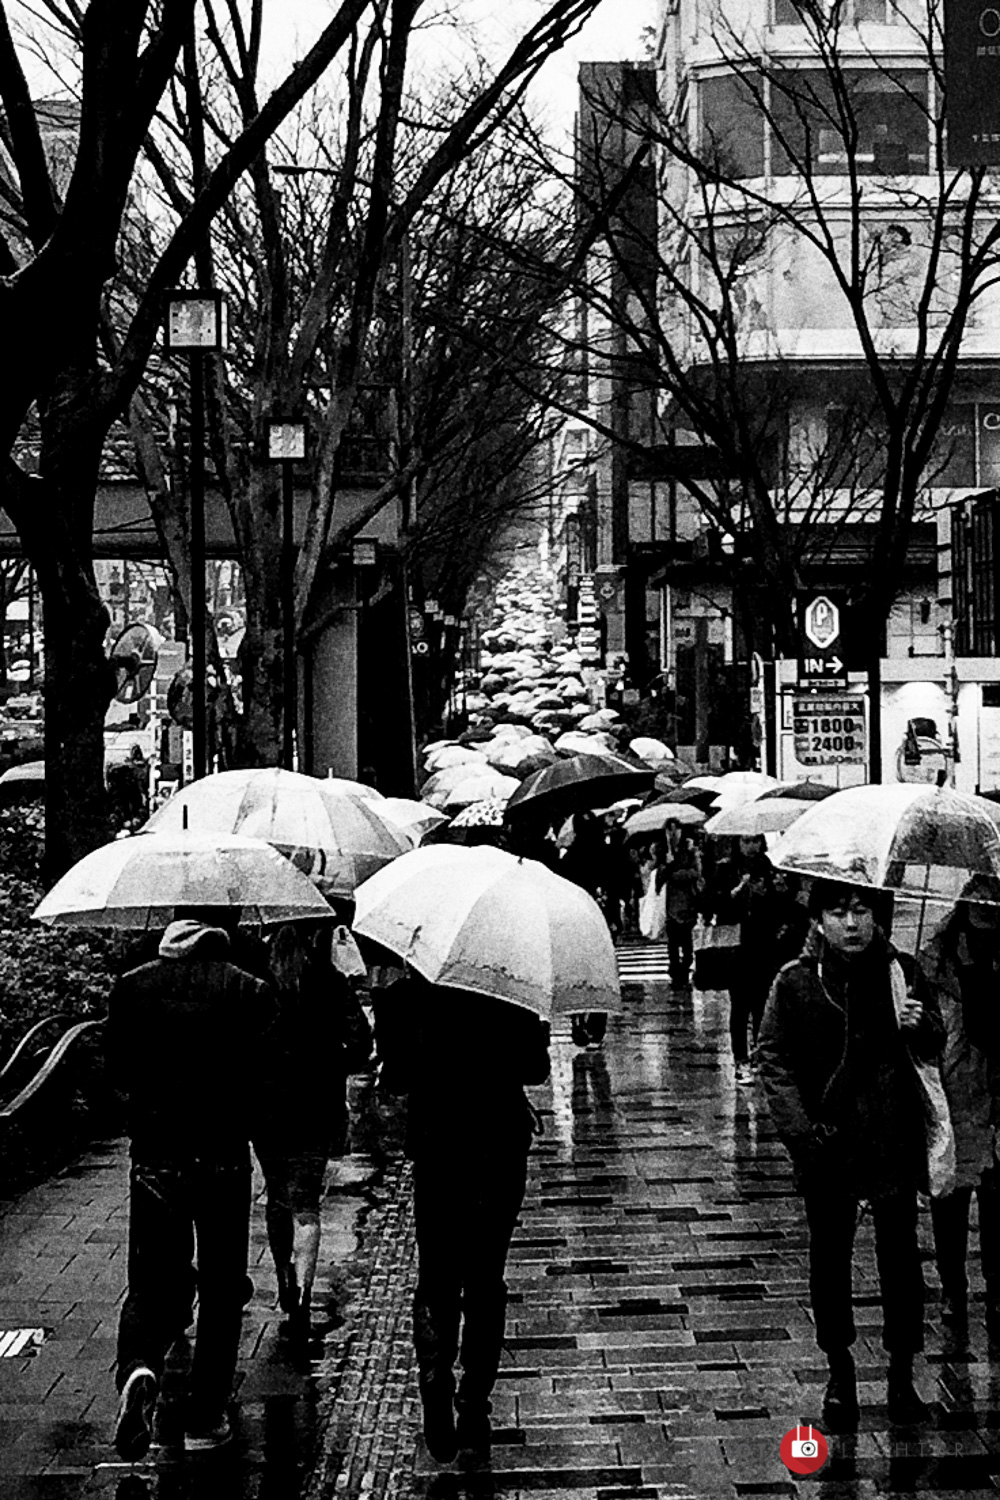 Omotesando, Tokyo. iPhone 6 Plus ISO32, f/2.2, 1/40 sec. Edited in Lightroom and Silver Efex Pro 2.